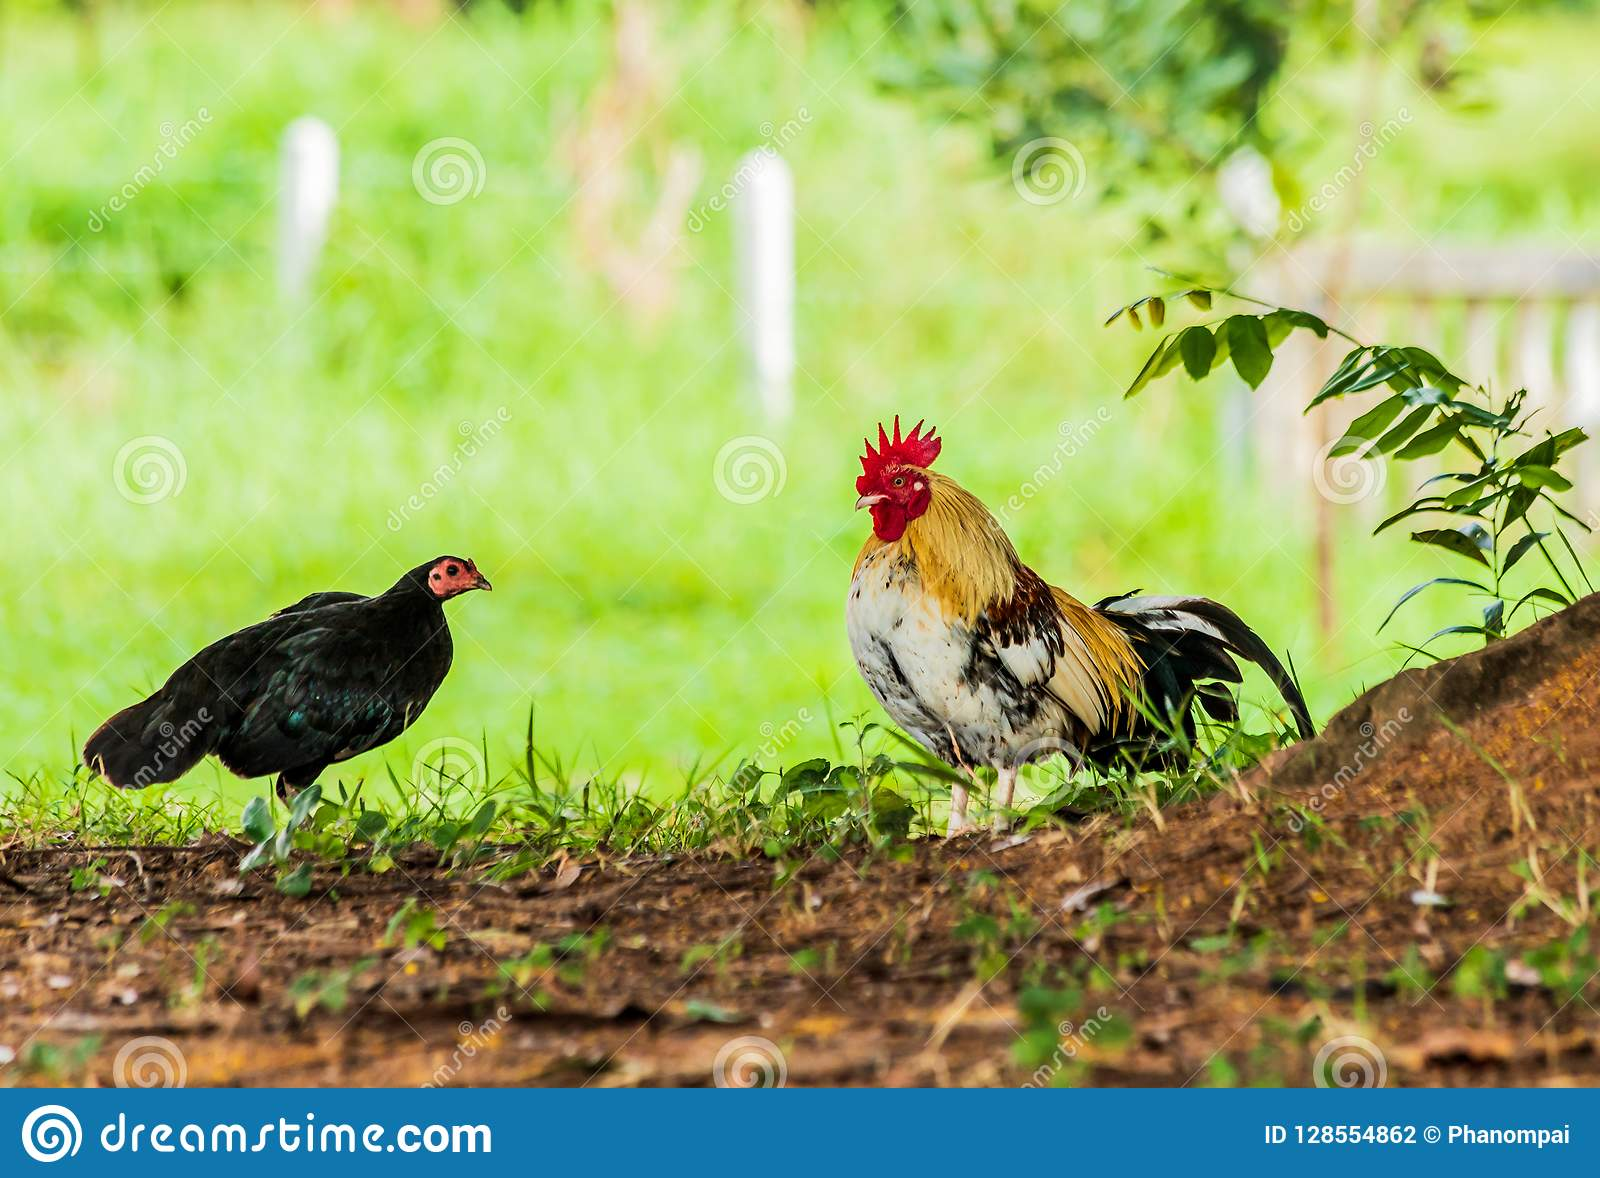 Male And Female Chickens Are Under The Shade  Stock Photo - Image of